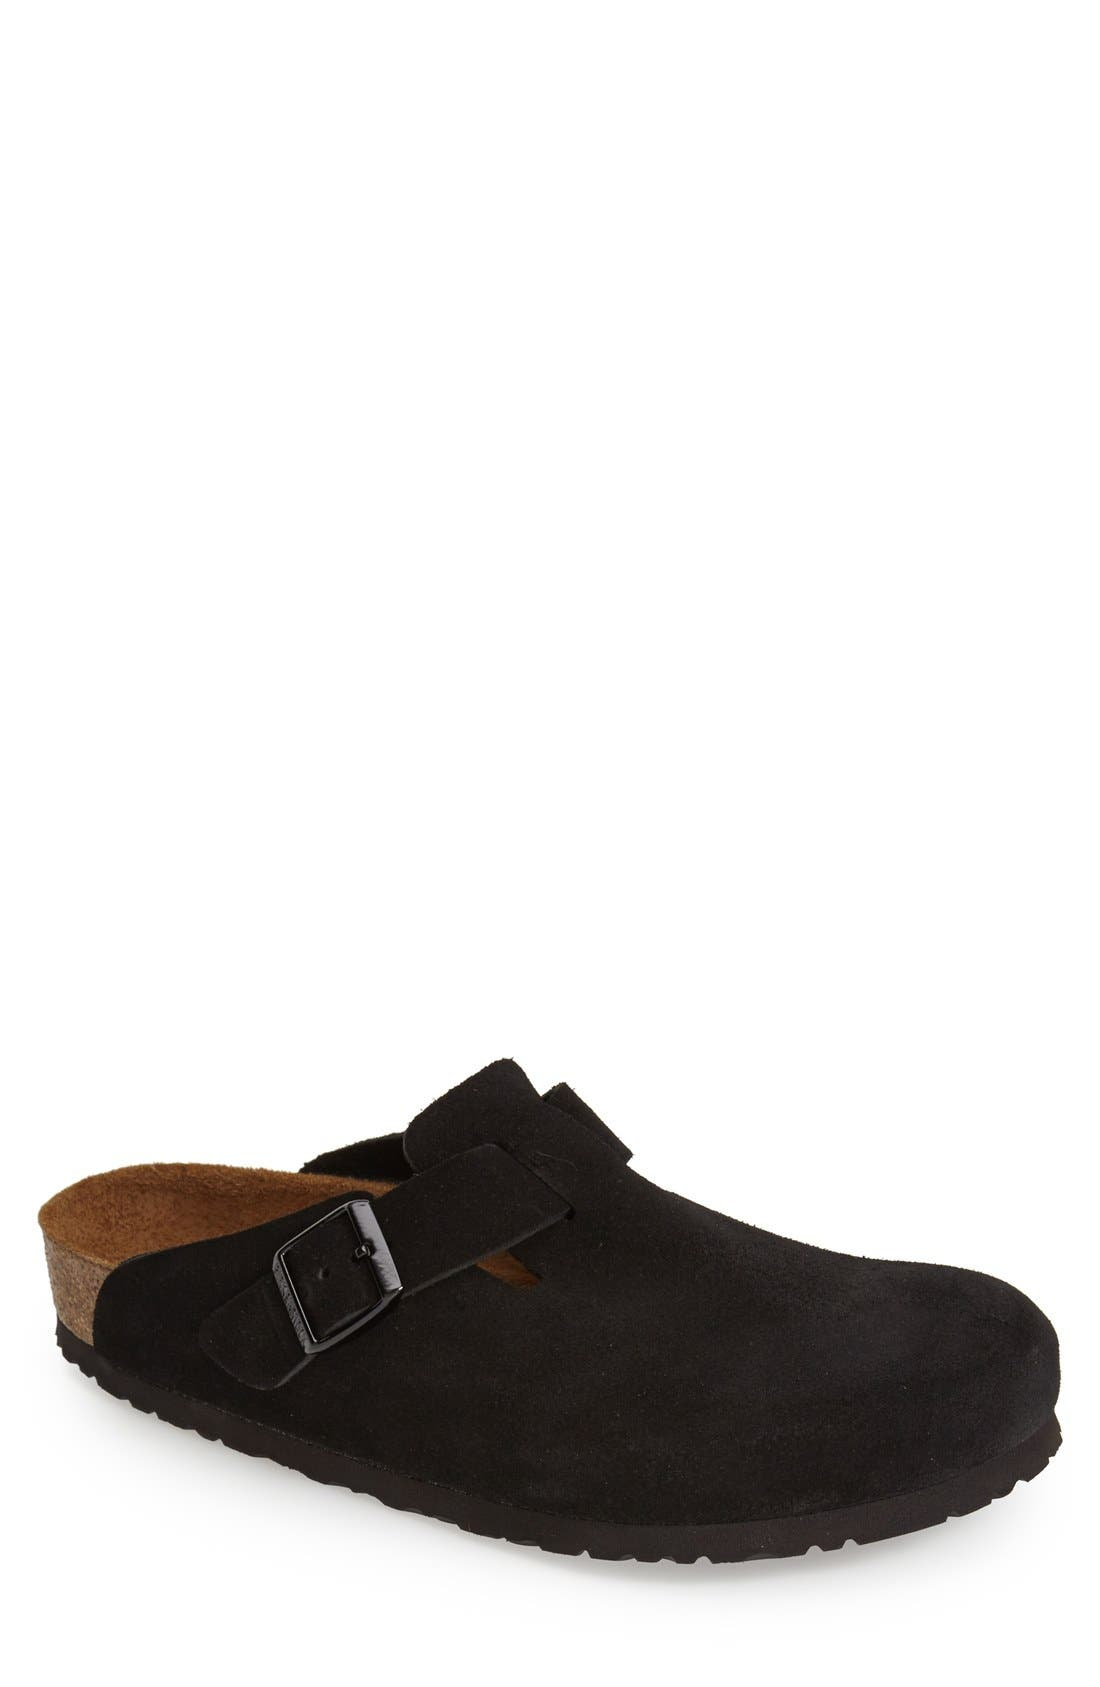 'Boston Soft' Clog,                         Main,                         color, Black